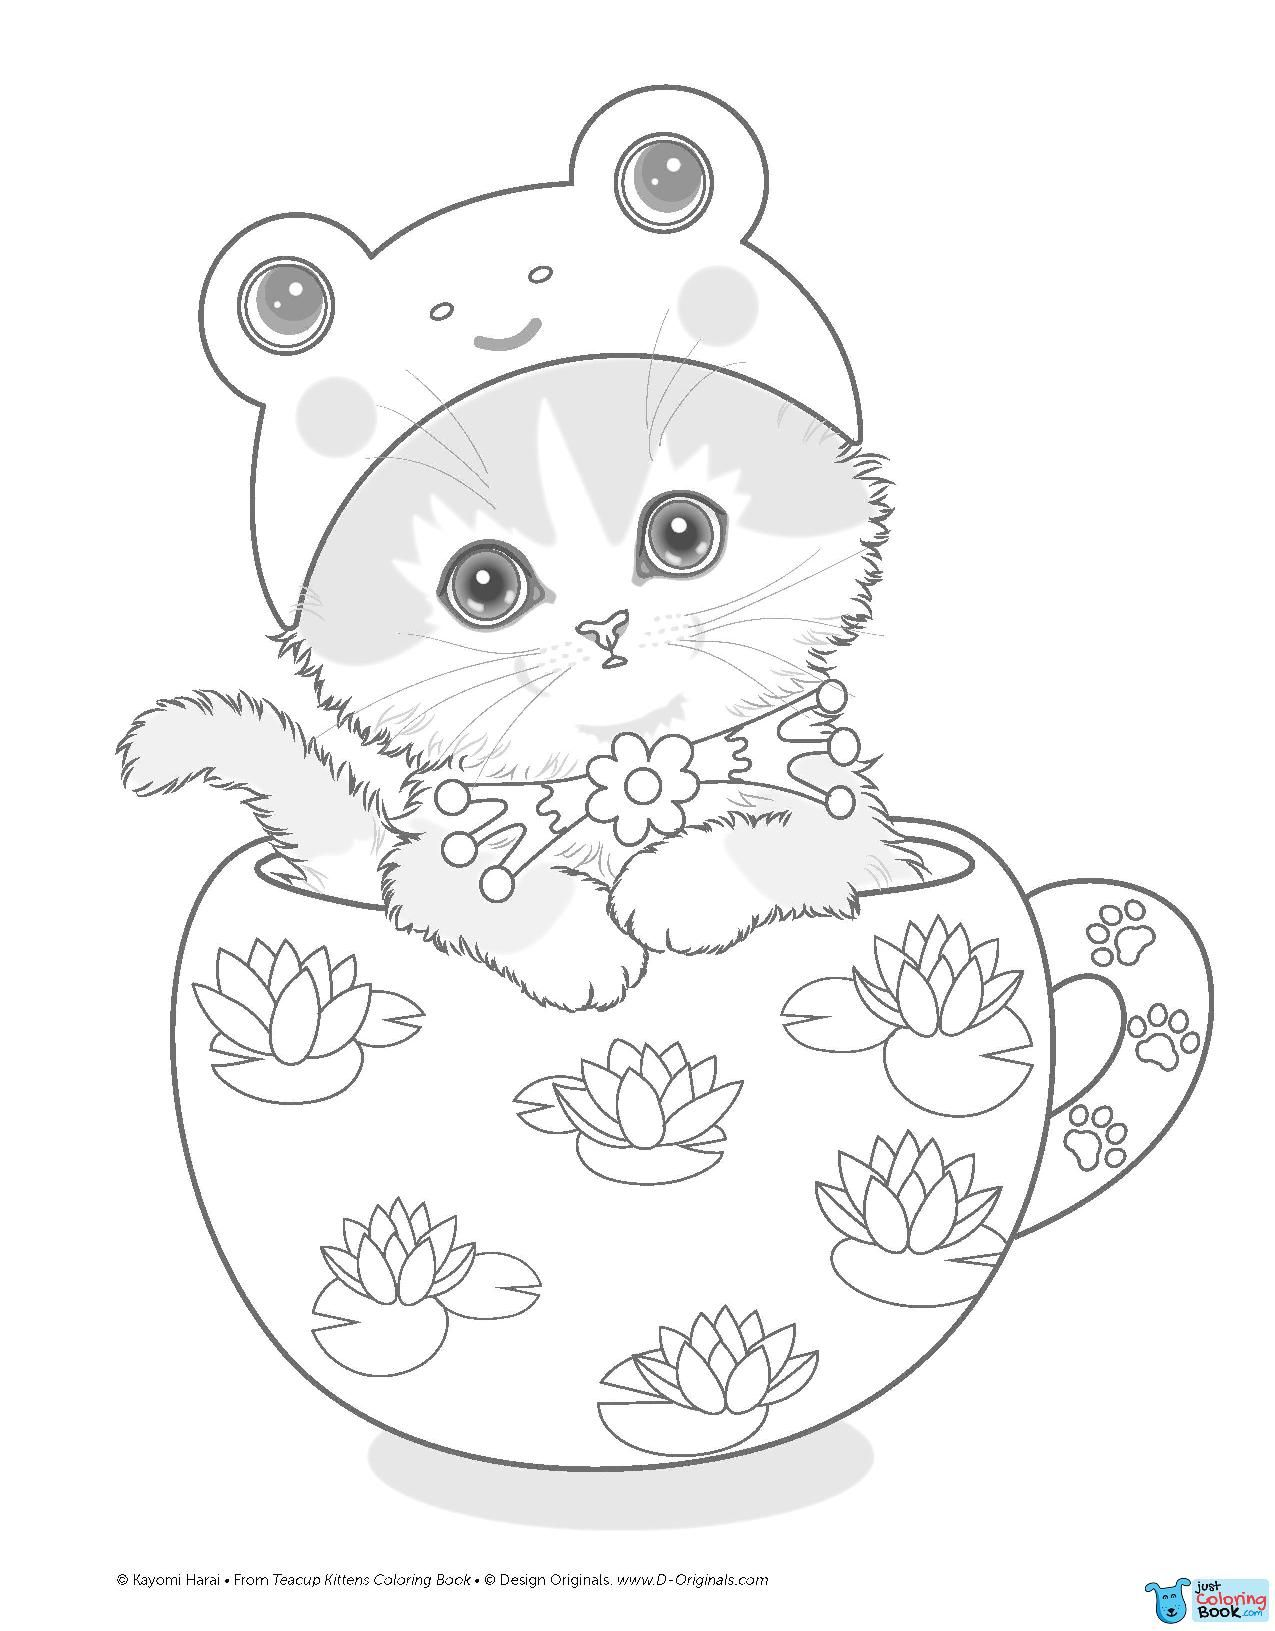 Teacup Kittens Kayomi Harai Cat Angel Coloring Pages Cat Throughout Download Lovely Kitten Colorin Kitten Coloring Book Kittens Coloring Angel Coloring Pages